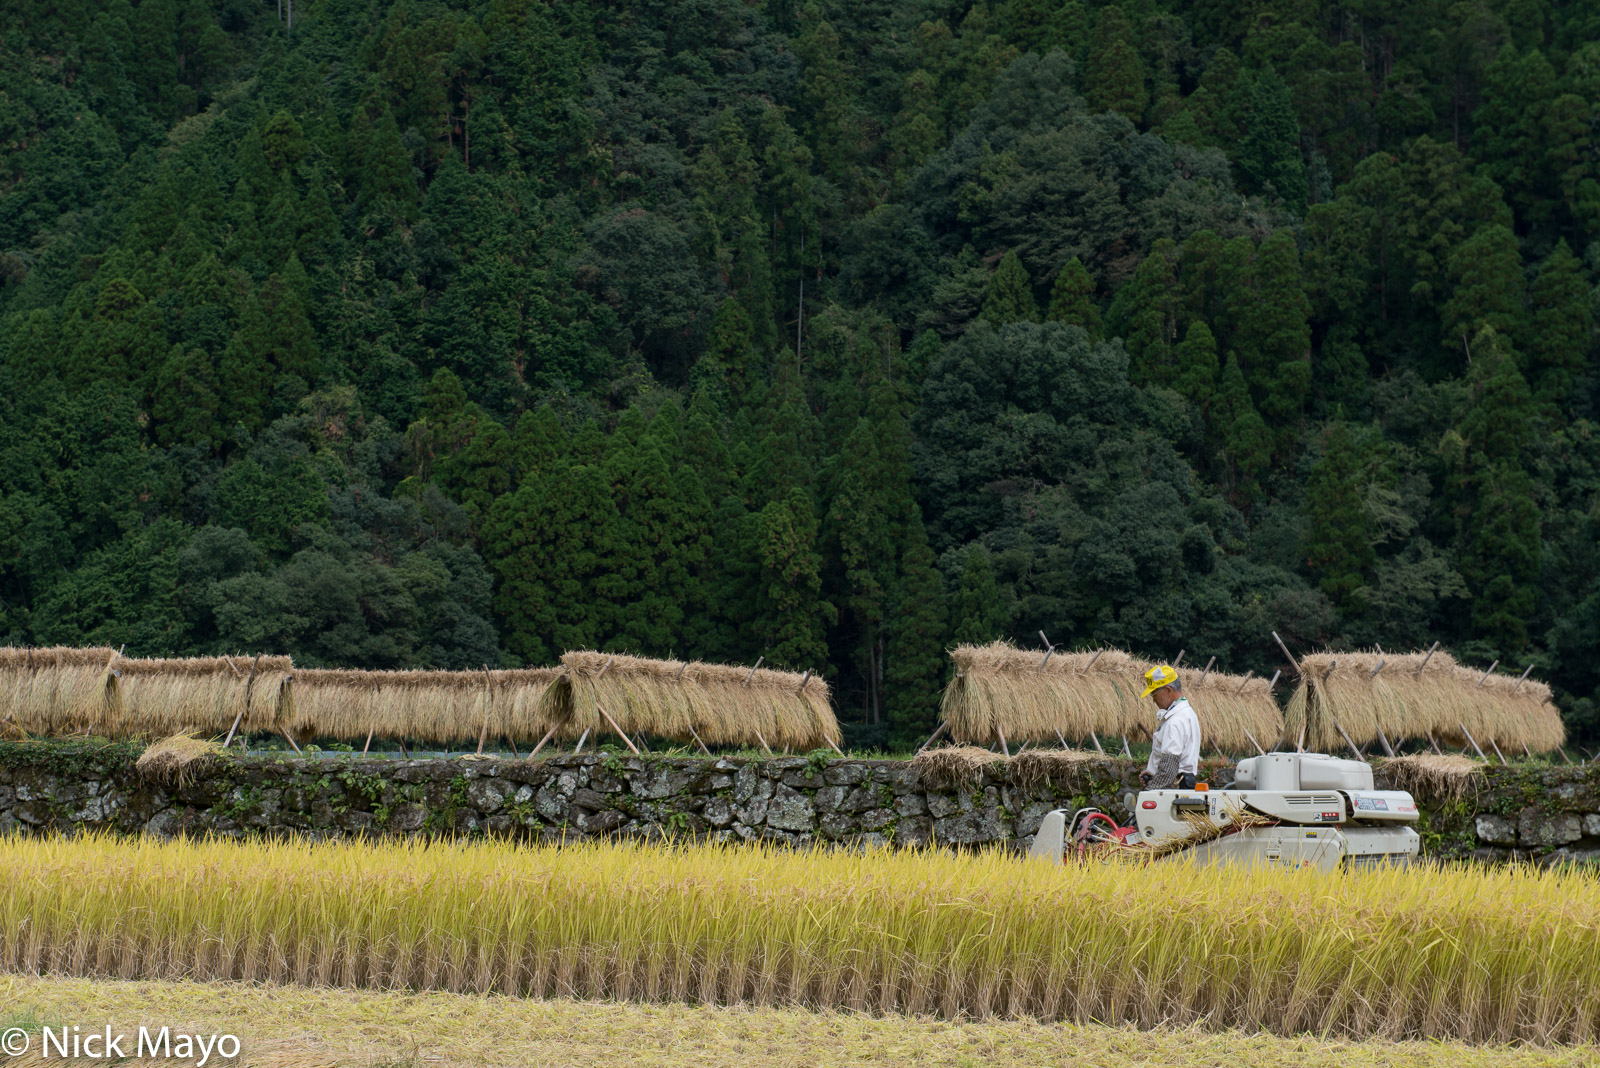 Drying Rack,Harvesting,Japan,Kyushu,Paddy, photo